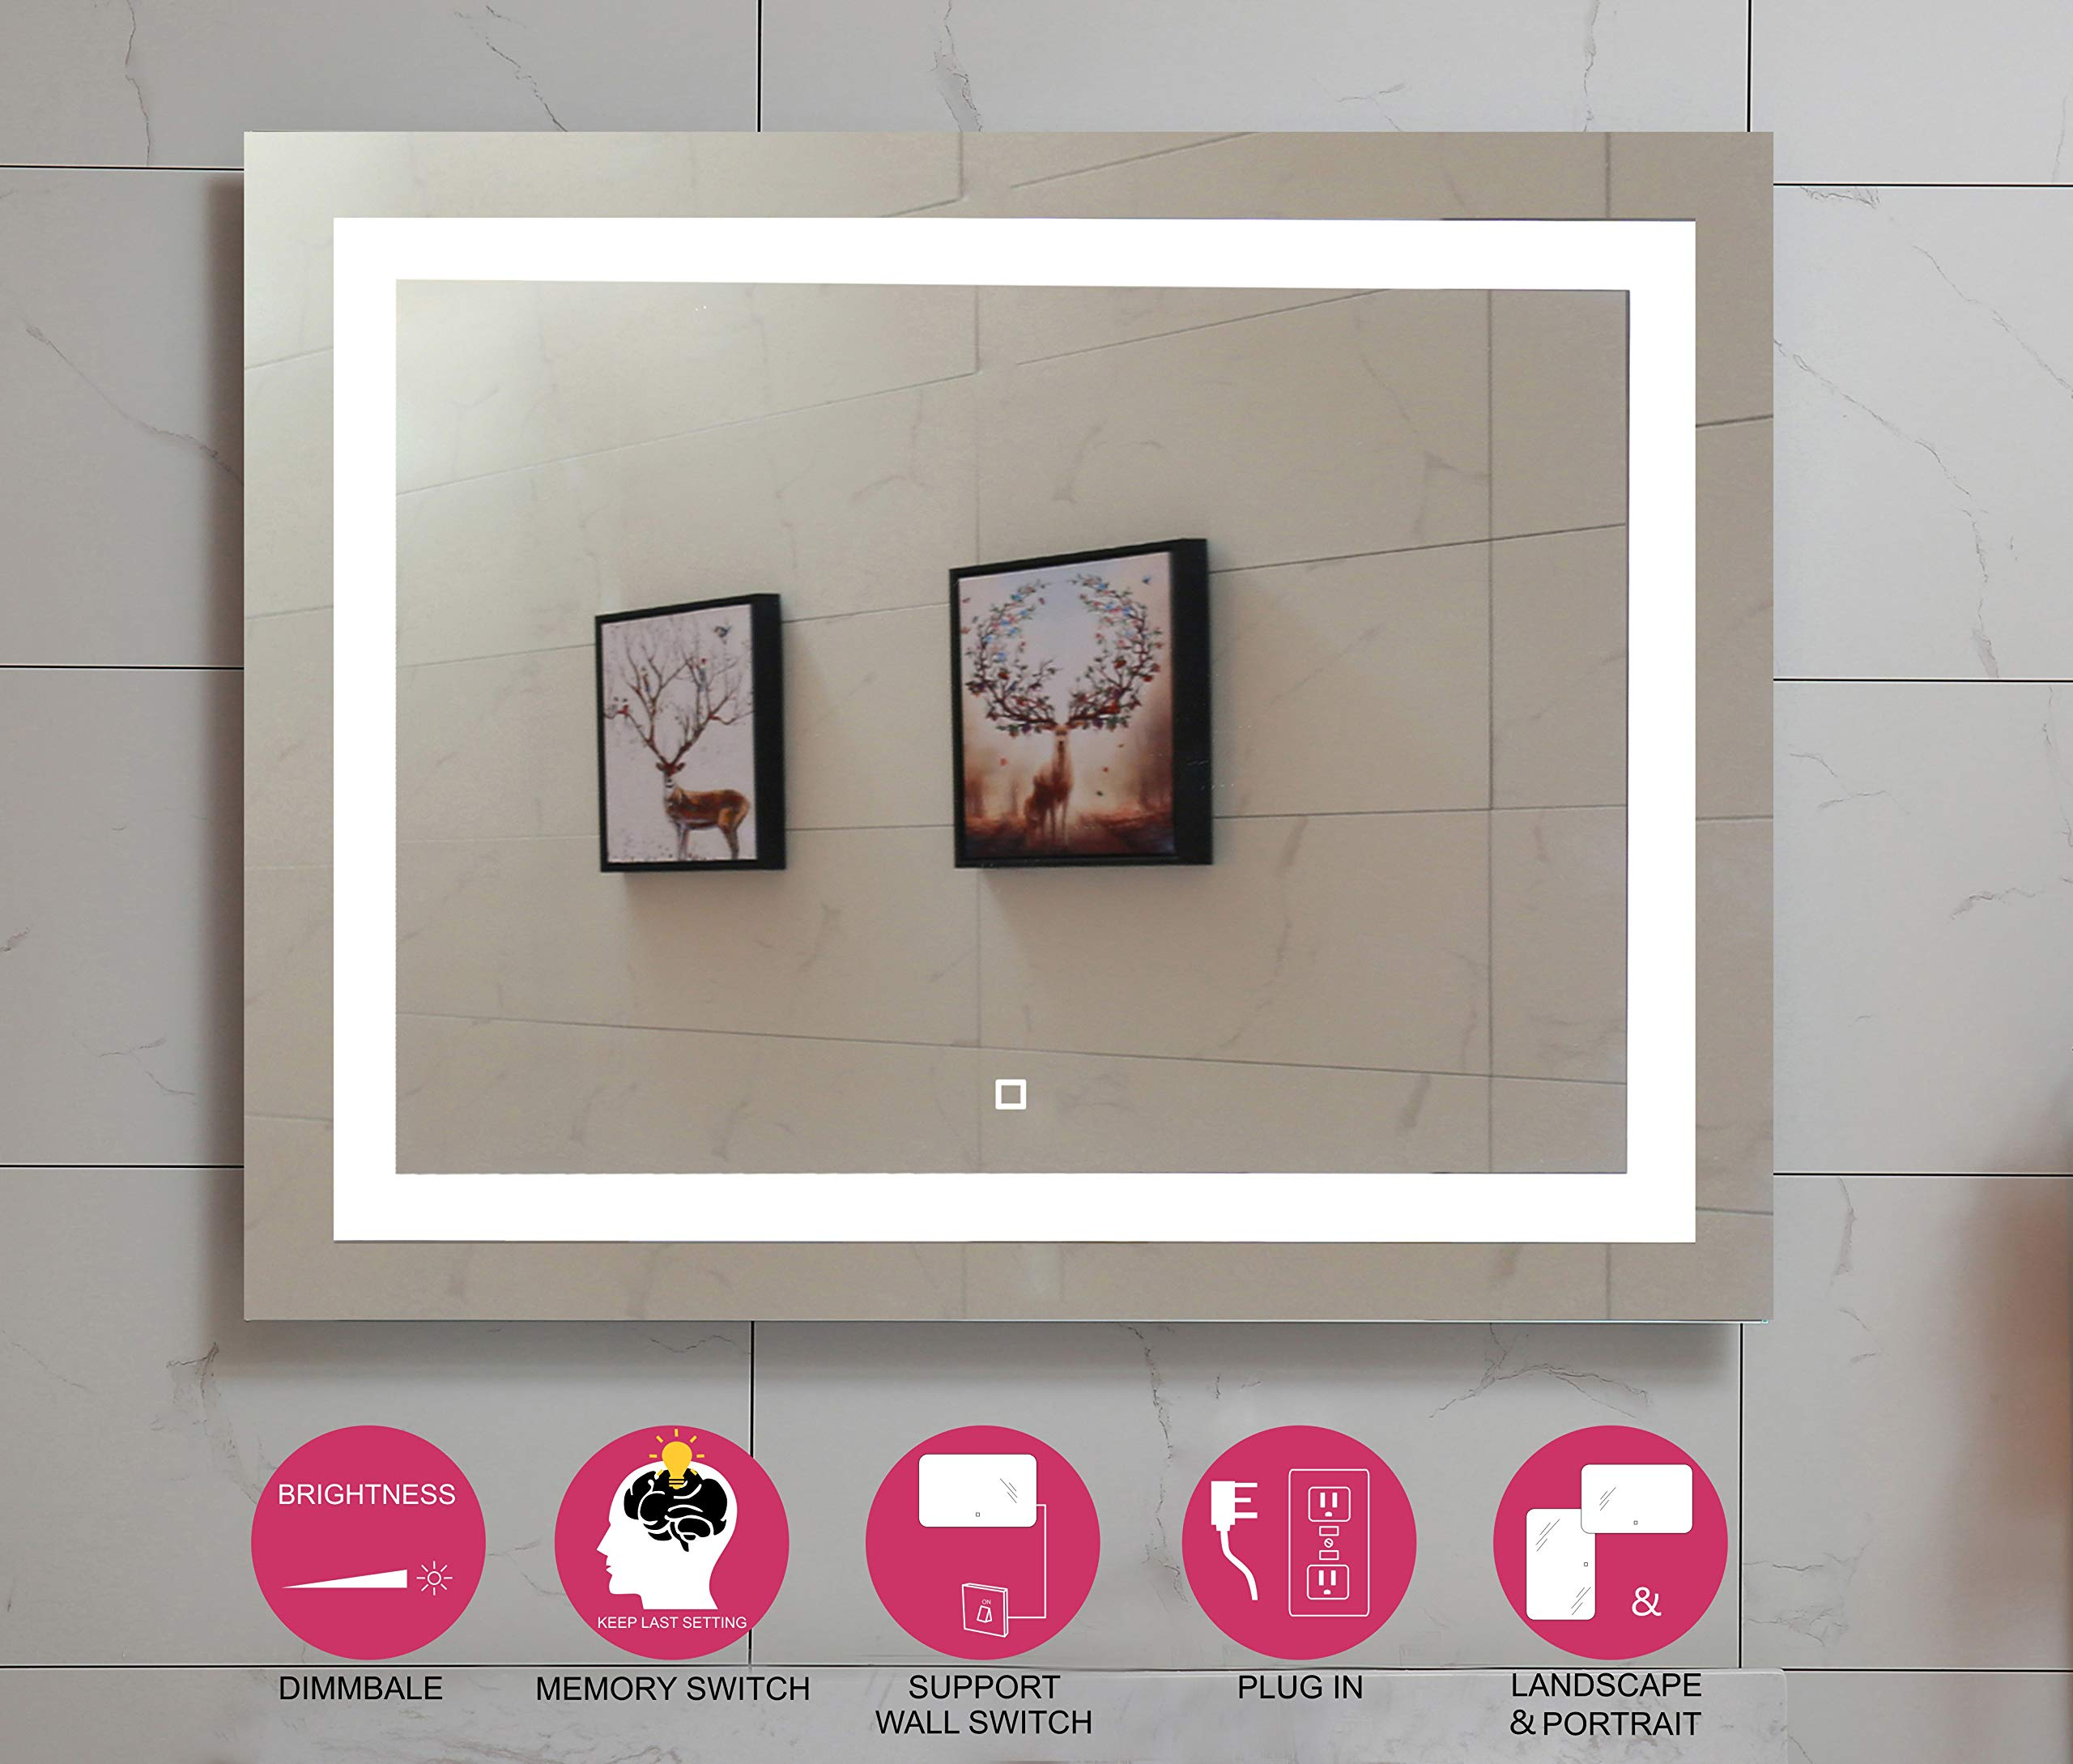 48X36 Inch LED Lighted Bathroom Mirror with Dimmable Touch Switch (GS099D-4836) (48x36 inch New) by GS MIRROR